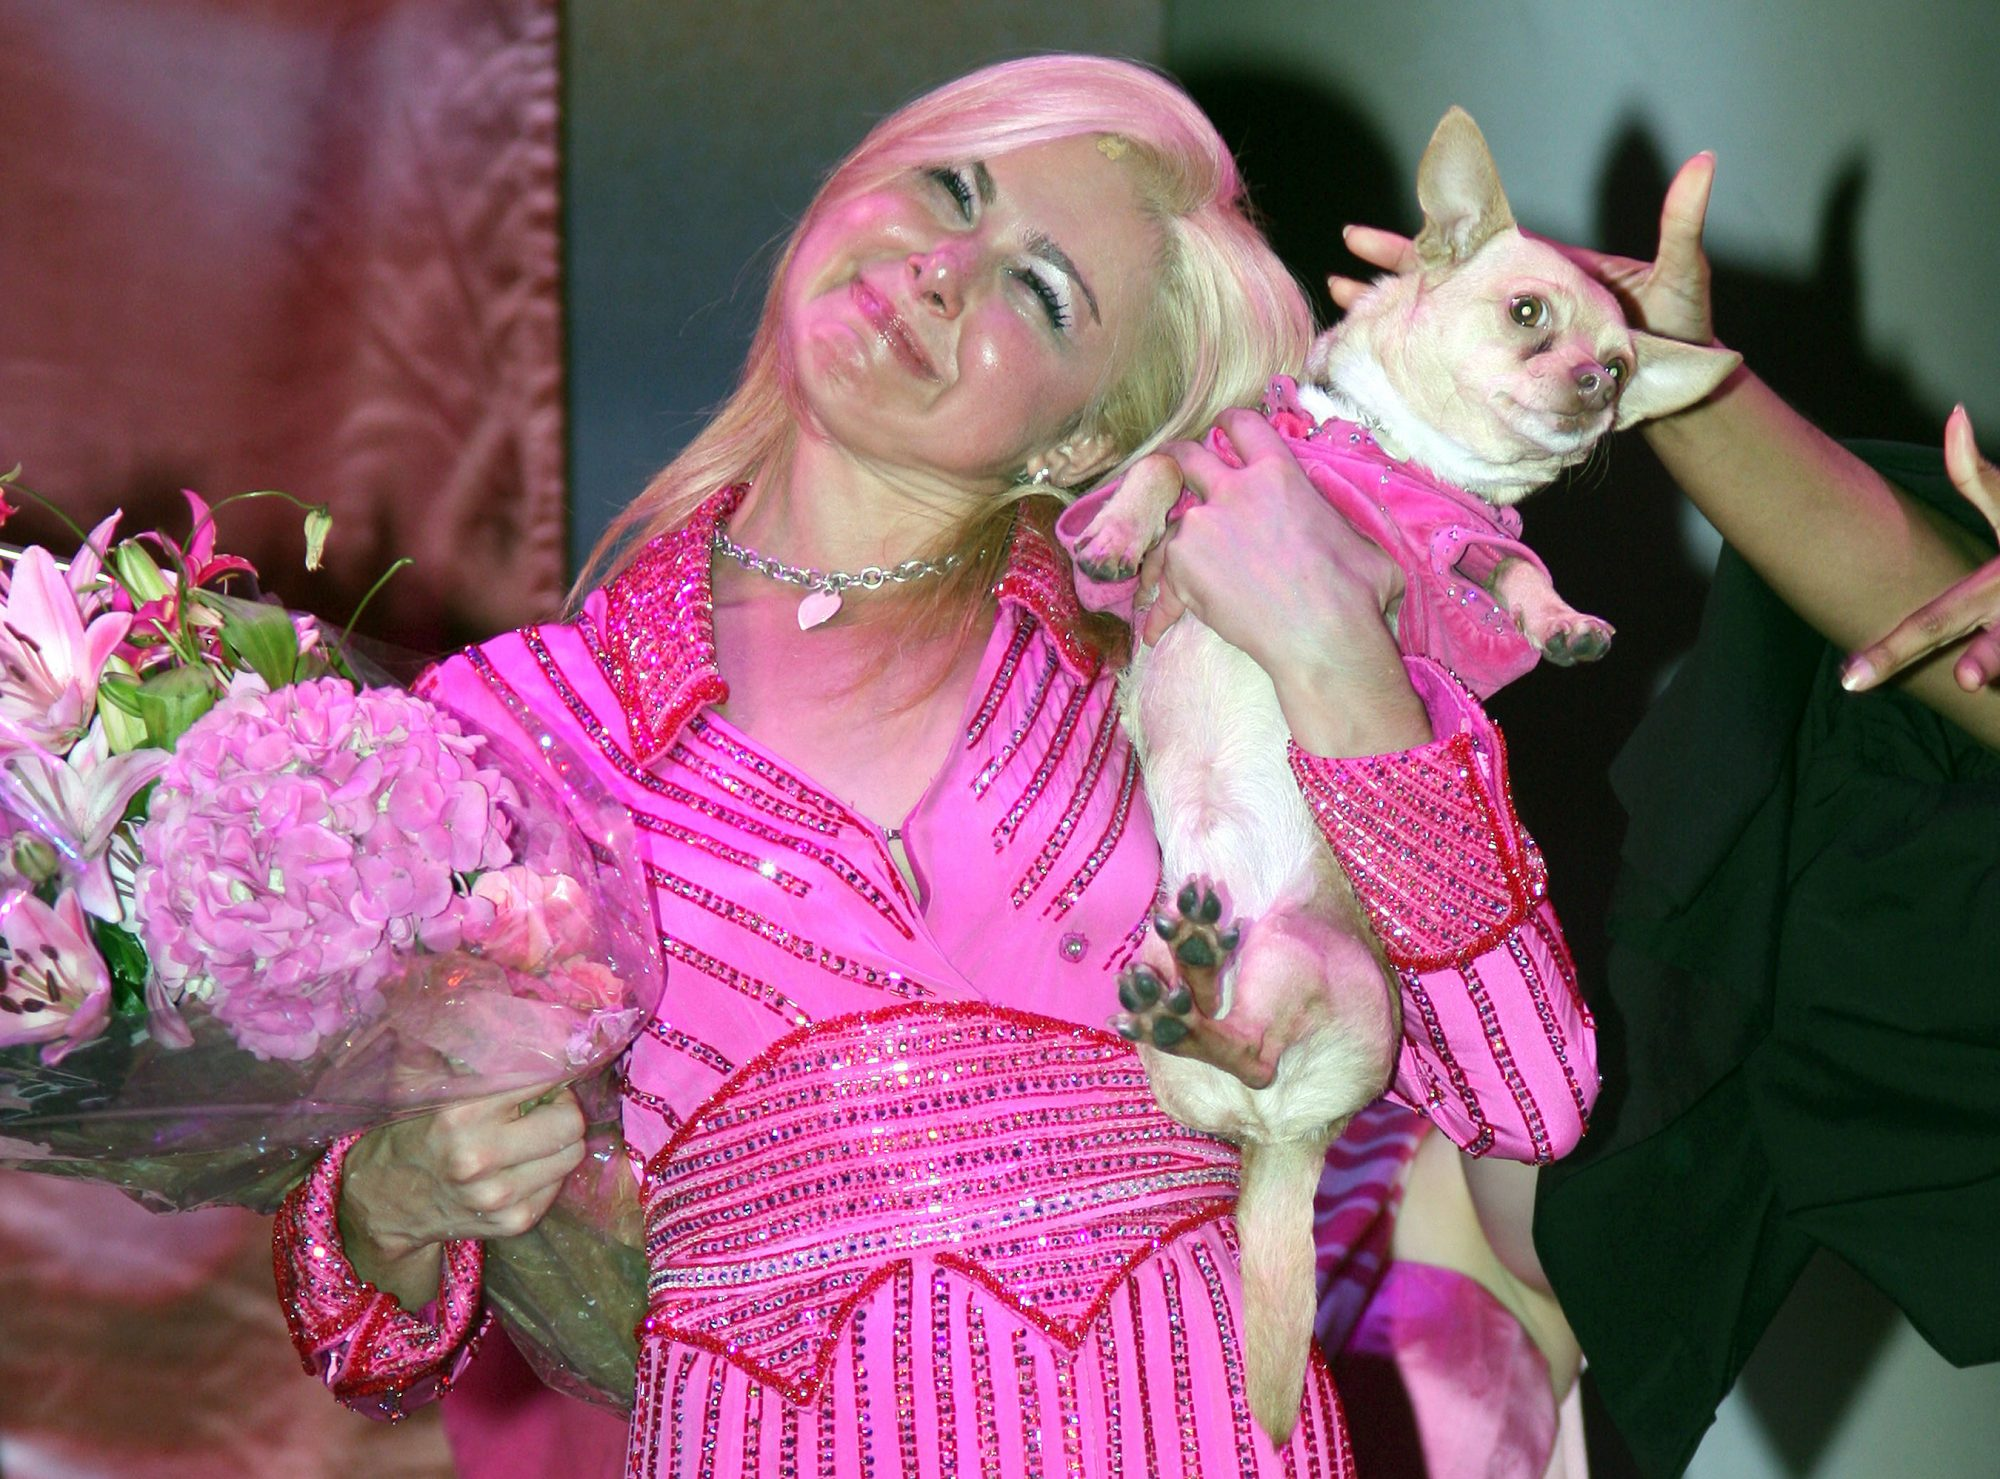 chico-chihuahua-legally-blonde-3